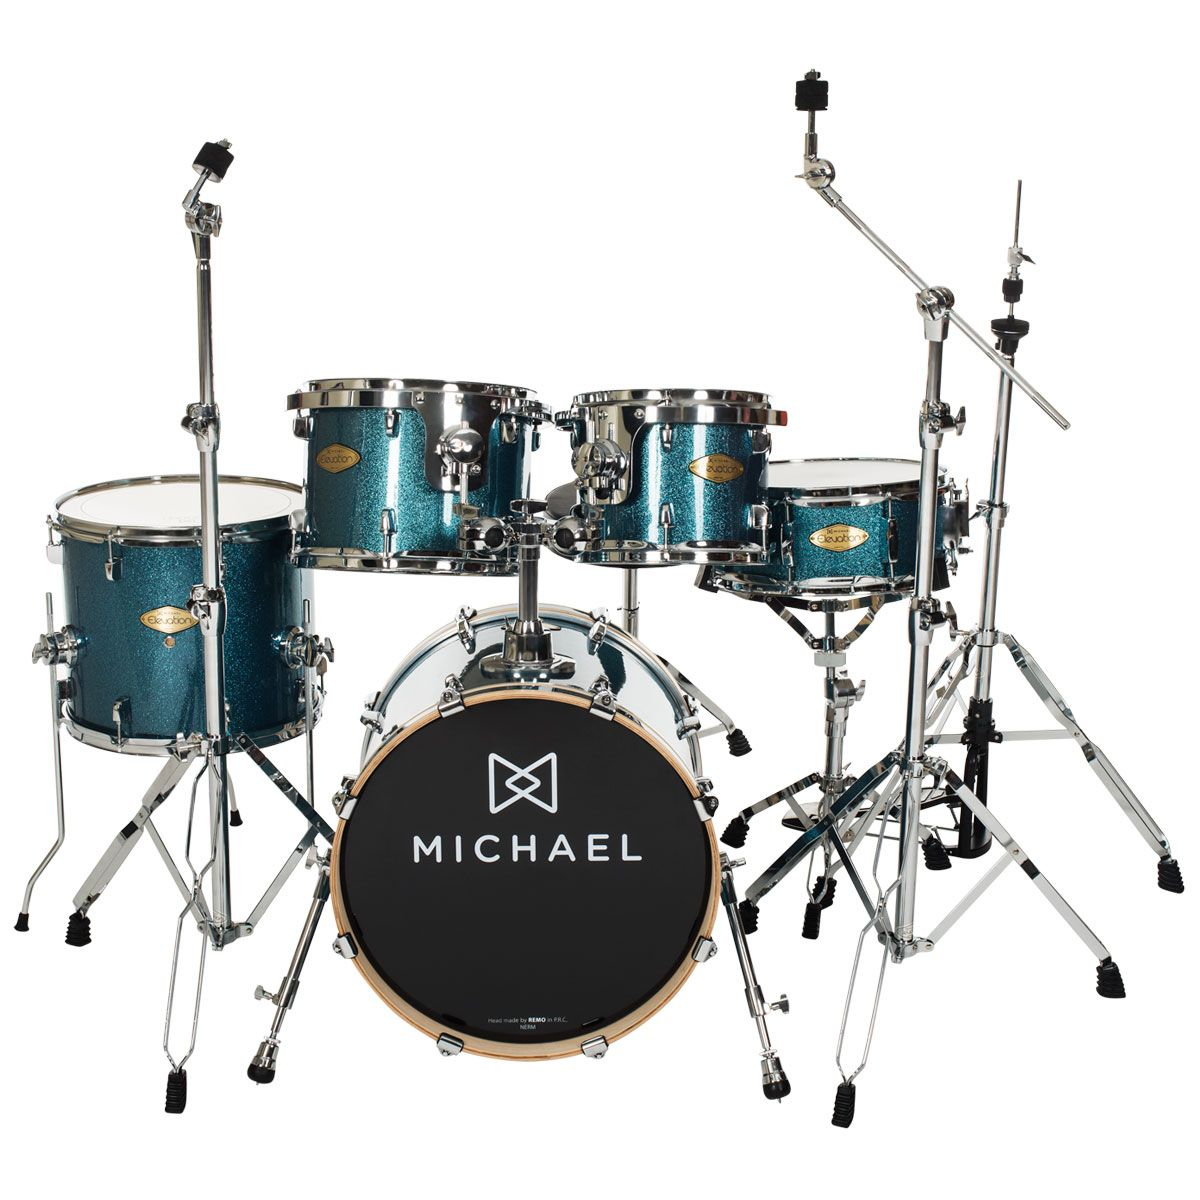 Bateria Acustica Michael Elevation DM852 BLS